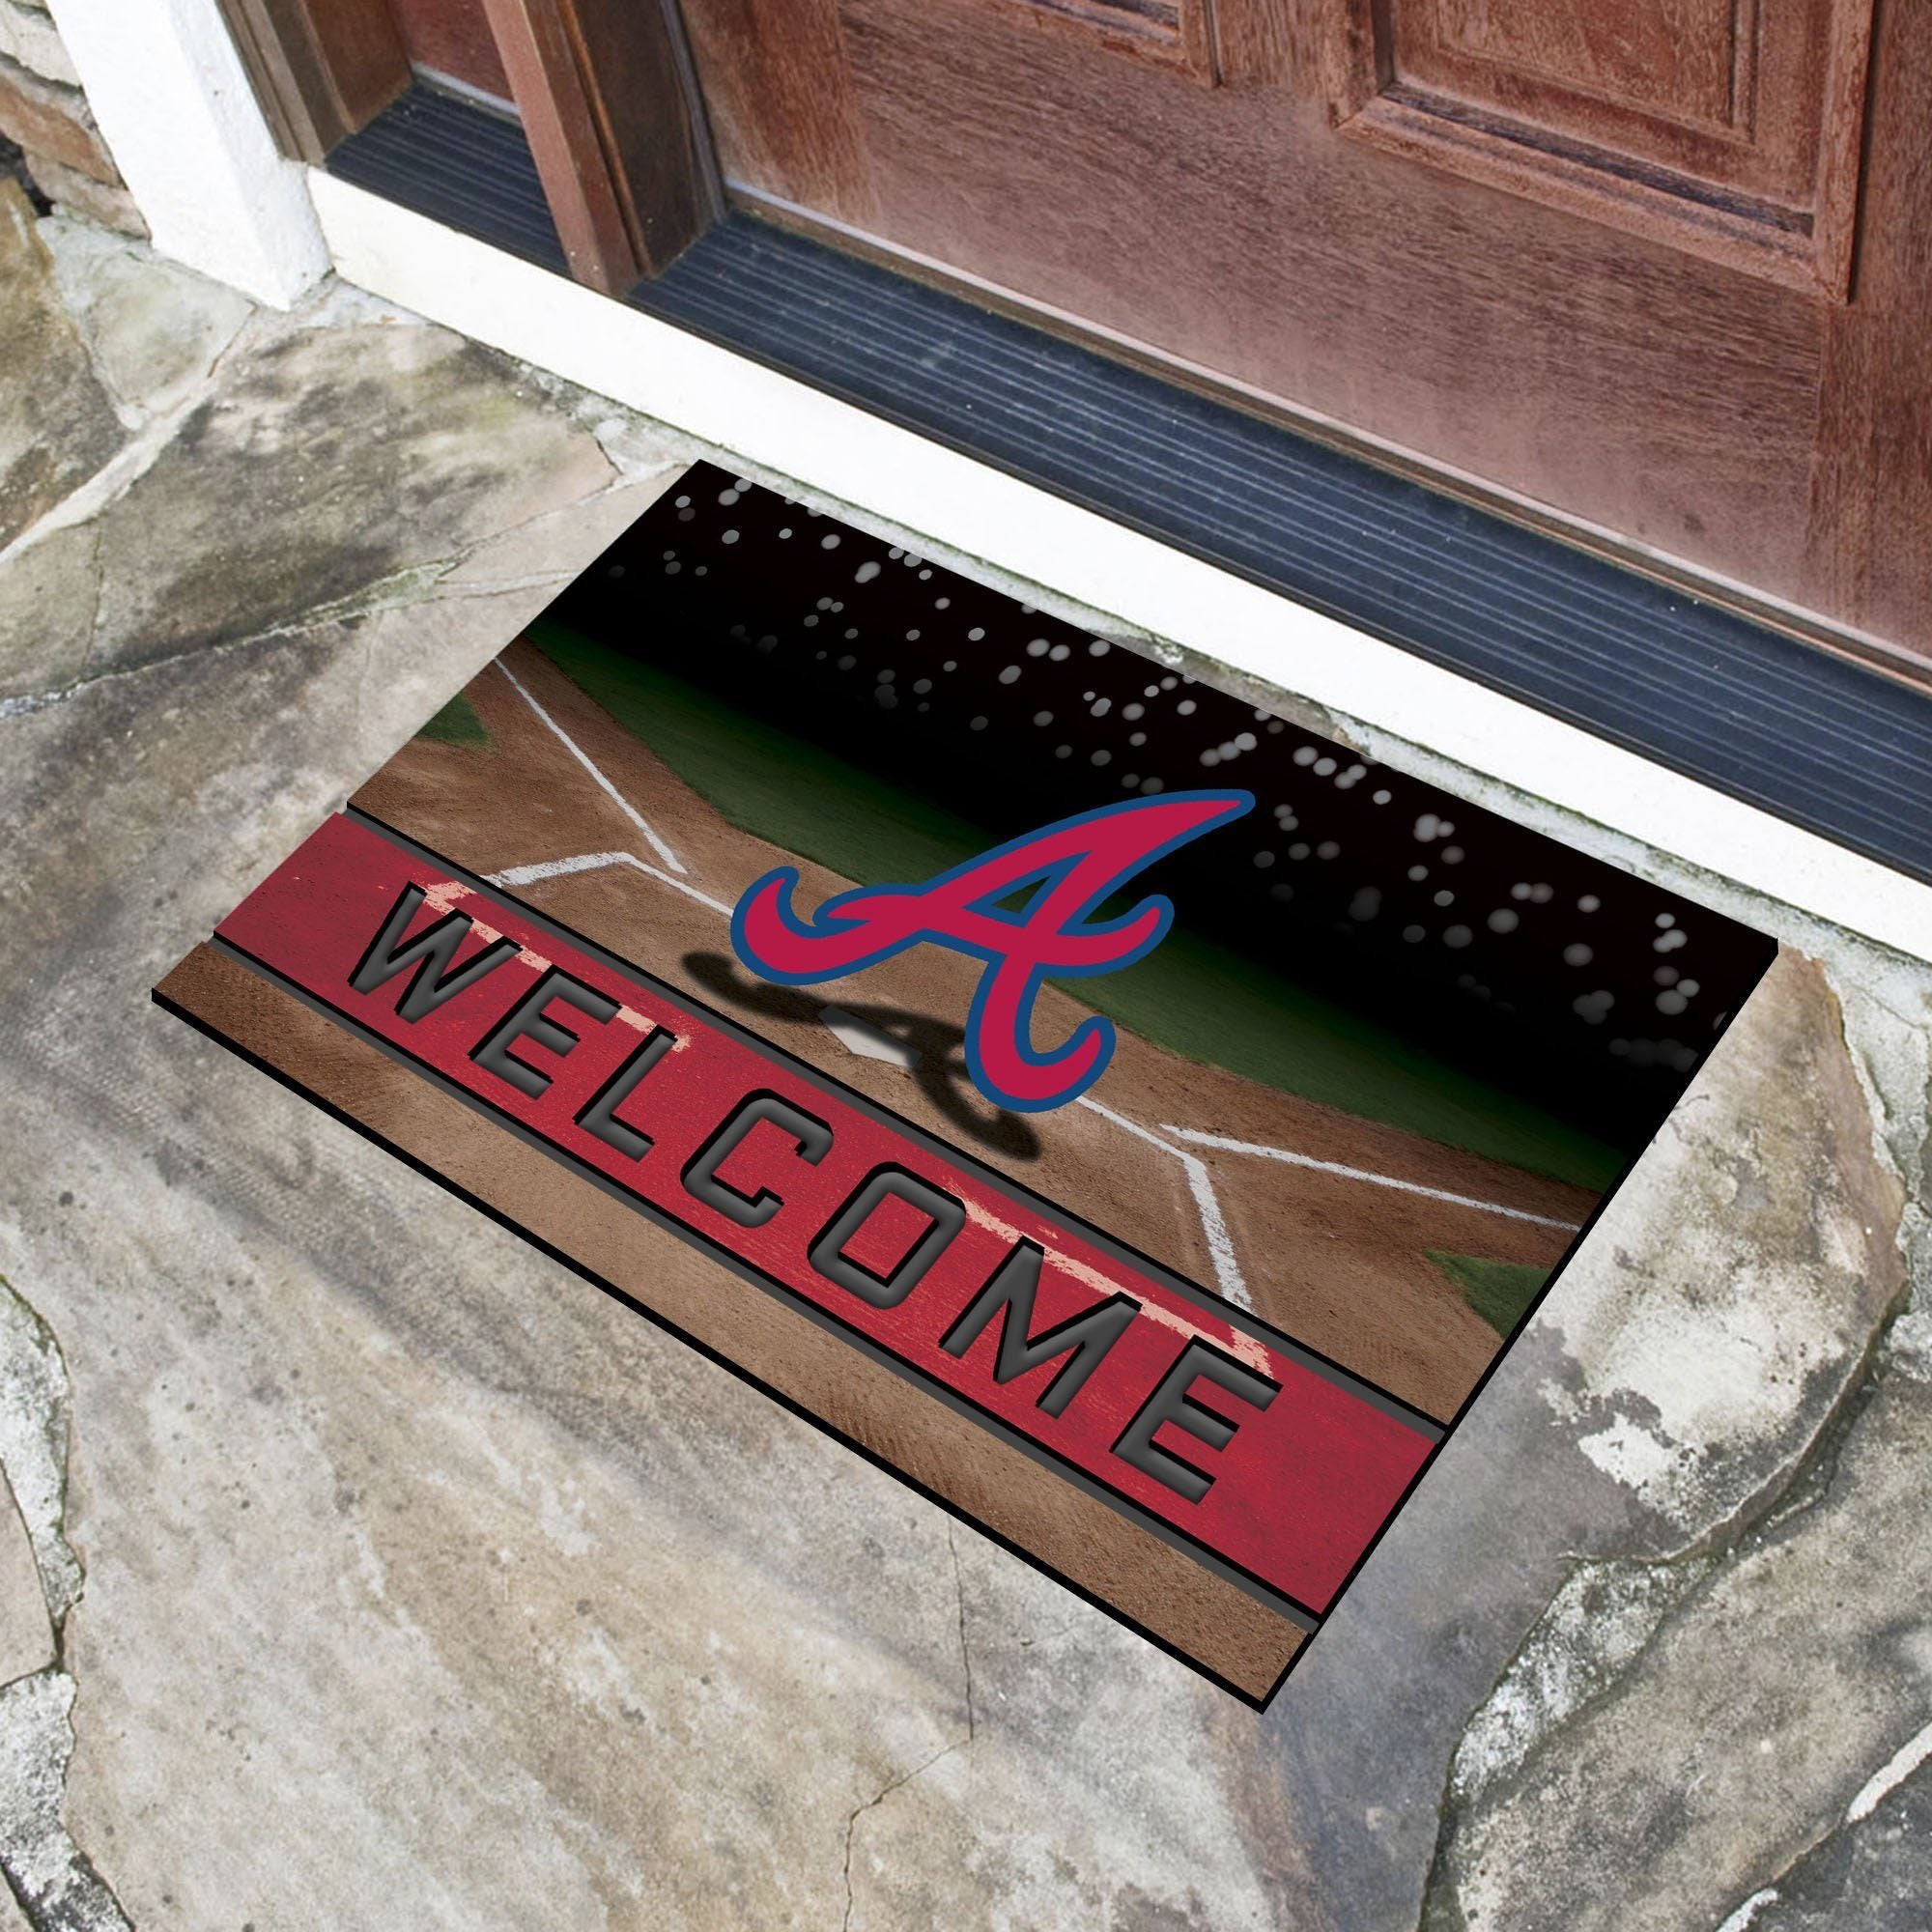 MLB - Crumb Rubber Door Mat MLB Mats, Door Mats, Crumb Rubber Door Mat, MLB, Home Fan Mats Arizona Diamondbacks